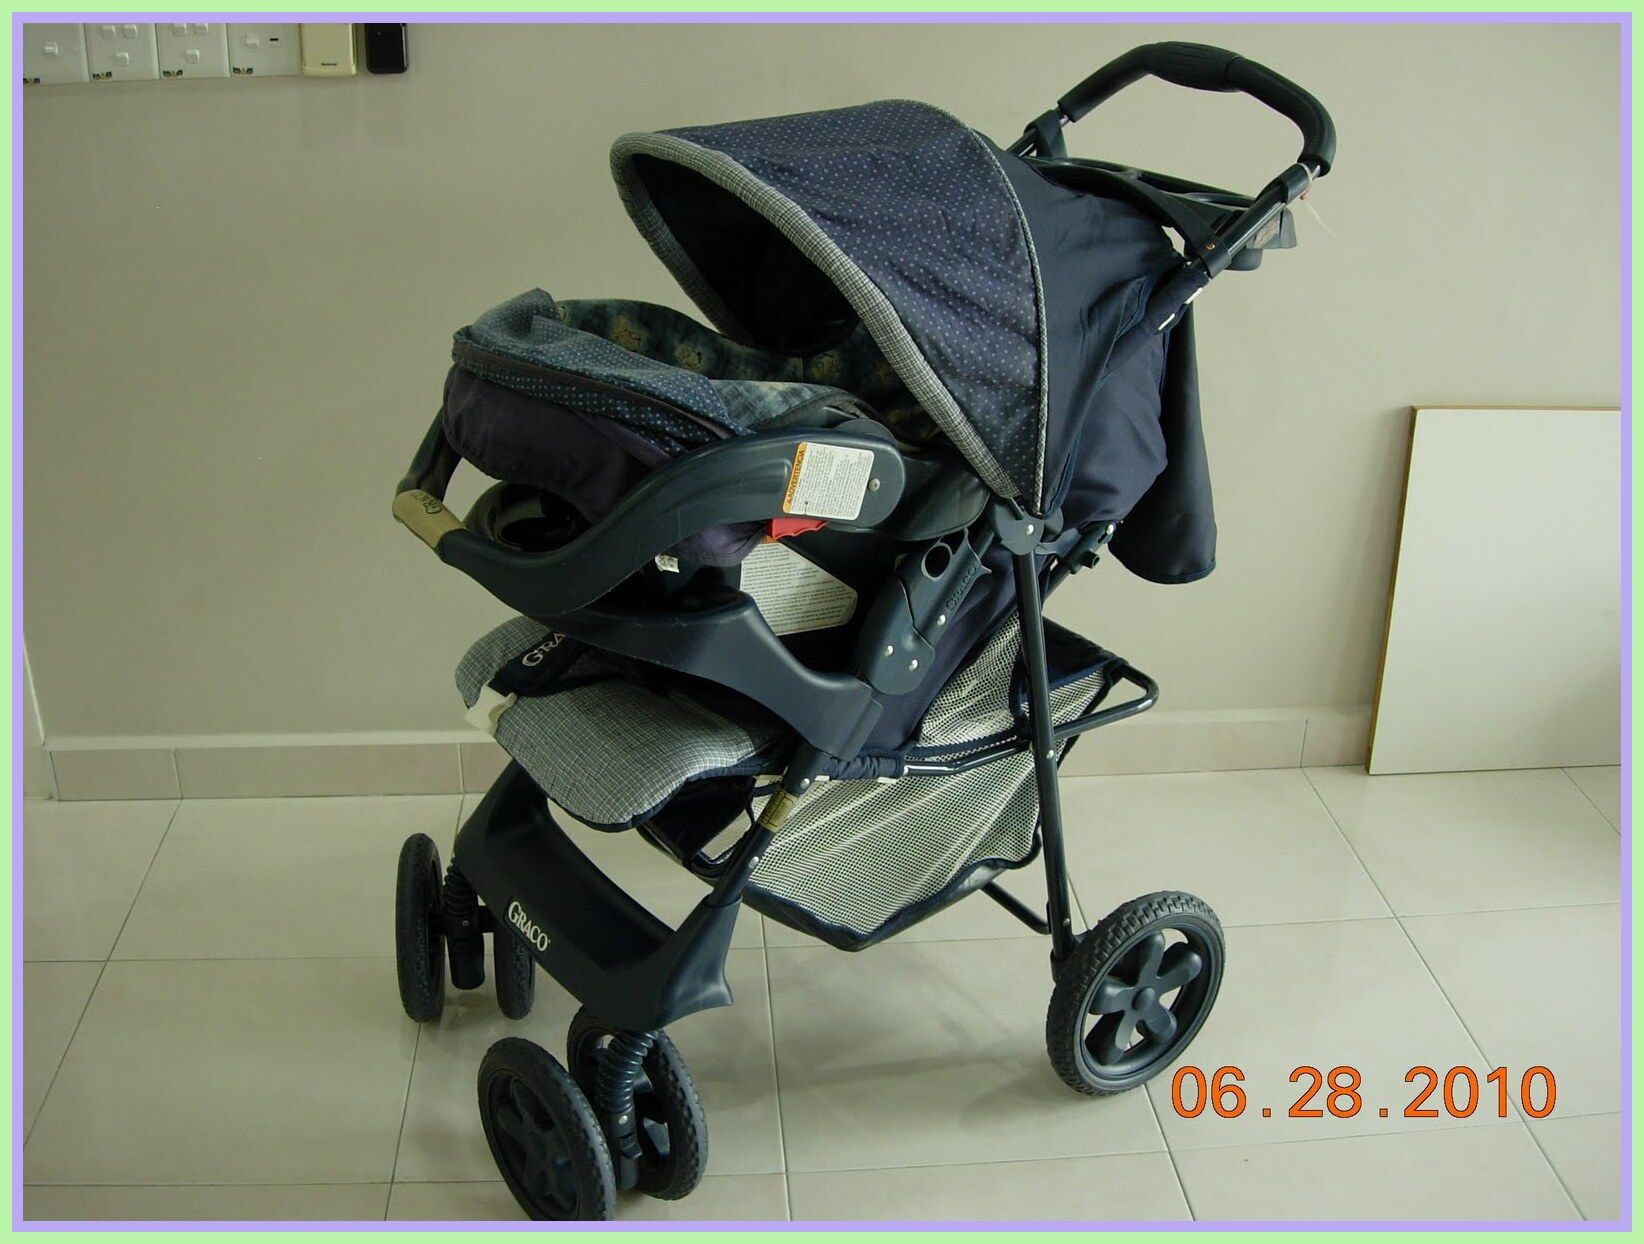 81 reference of graco stroller car seat in 2020 Graco